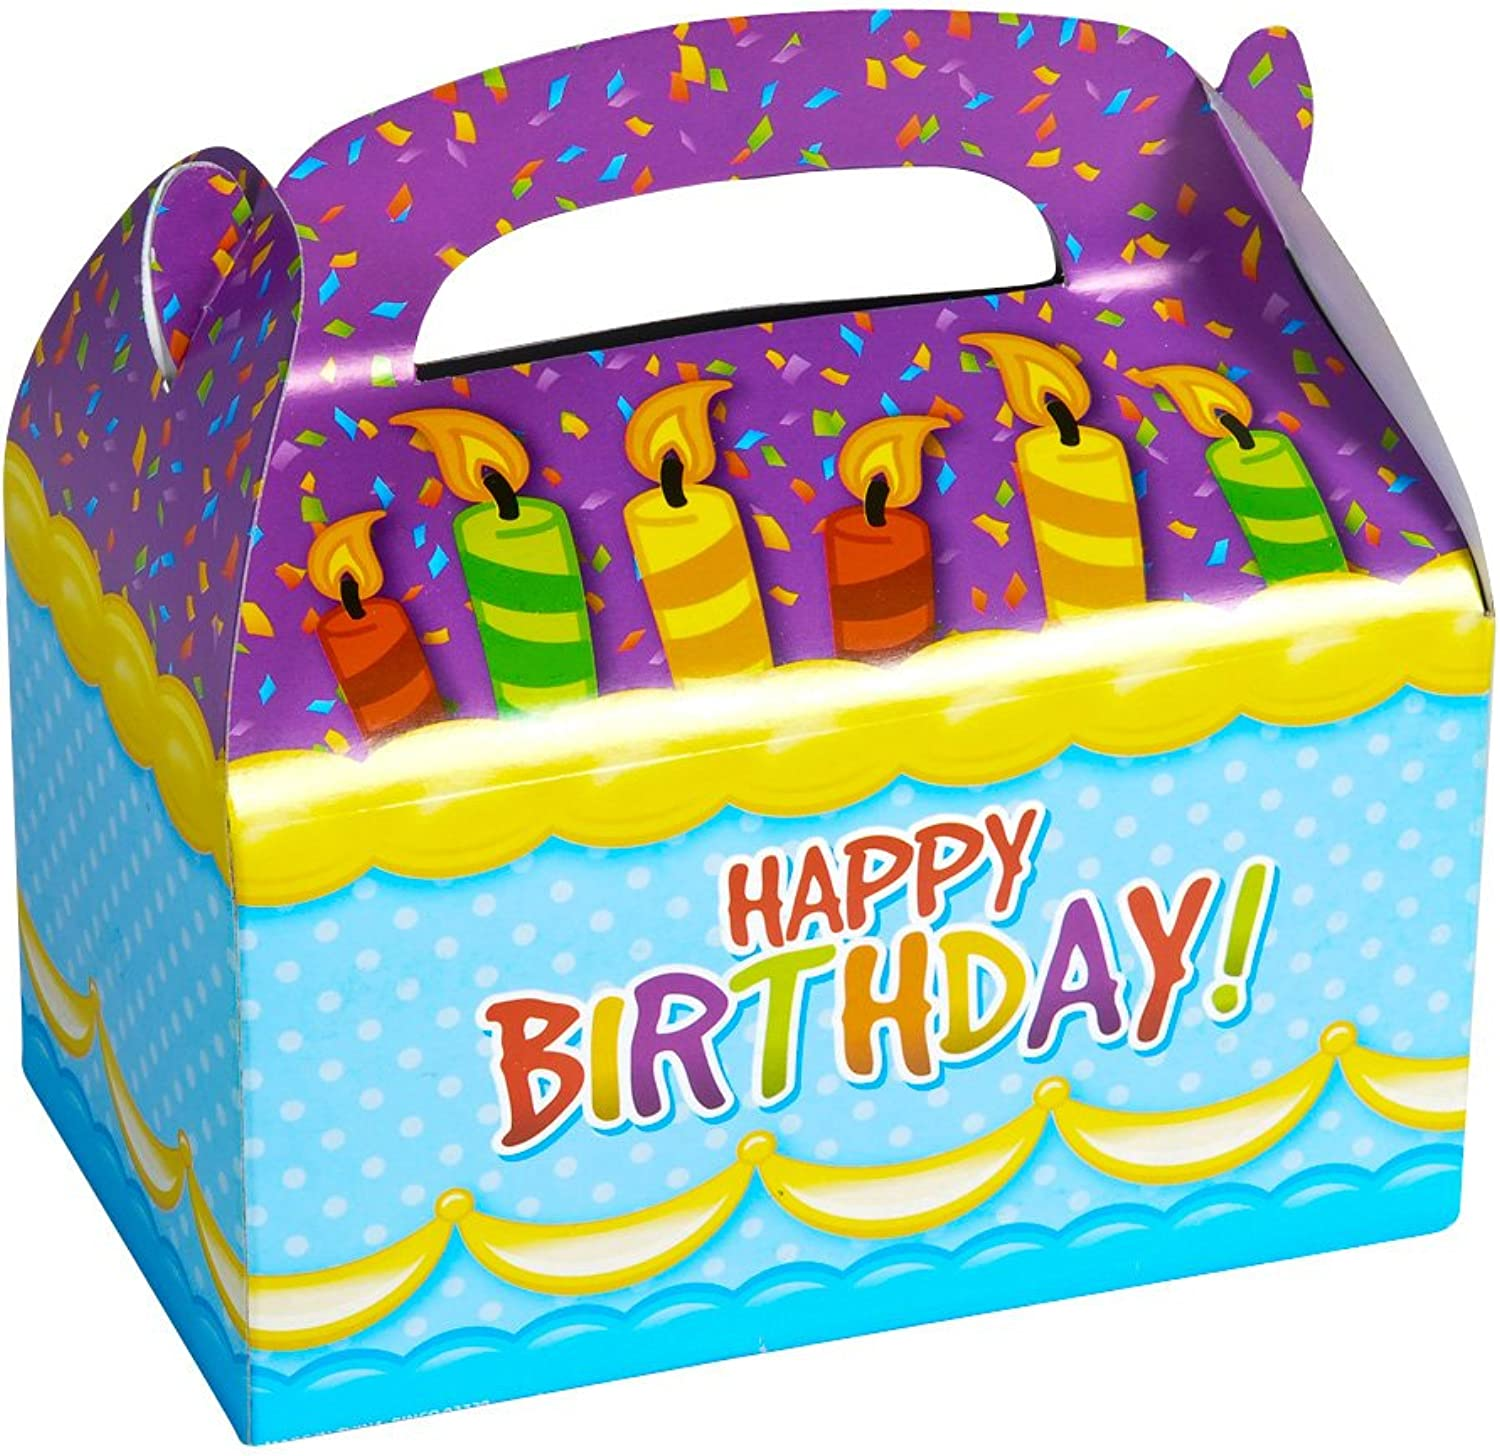 DOMAGRON Happy Birthday Treat Boxes (pack of 12)